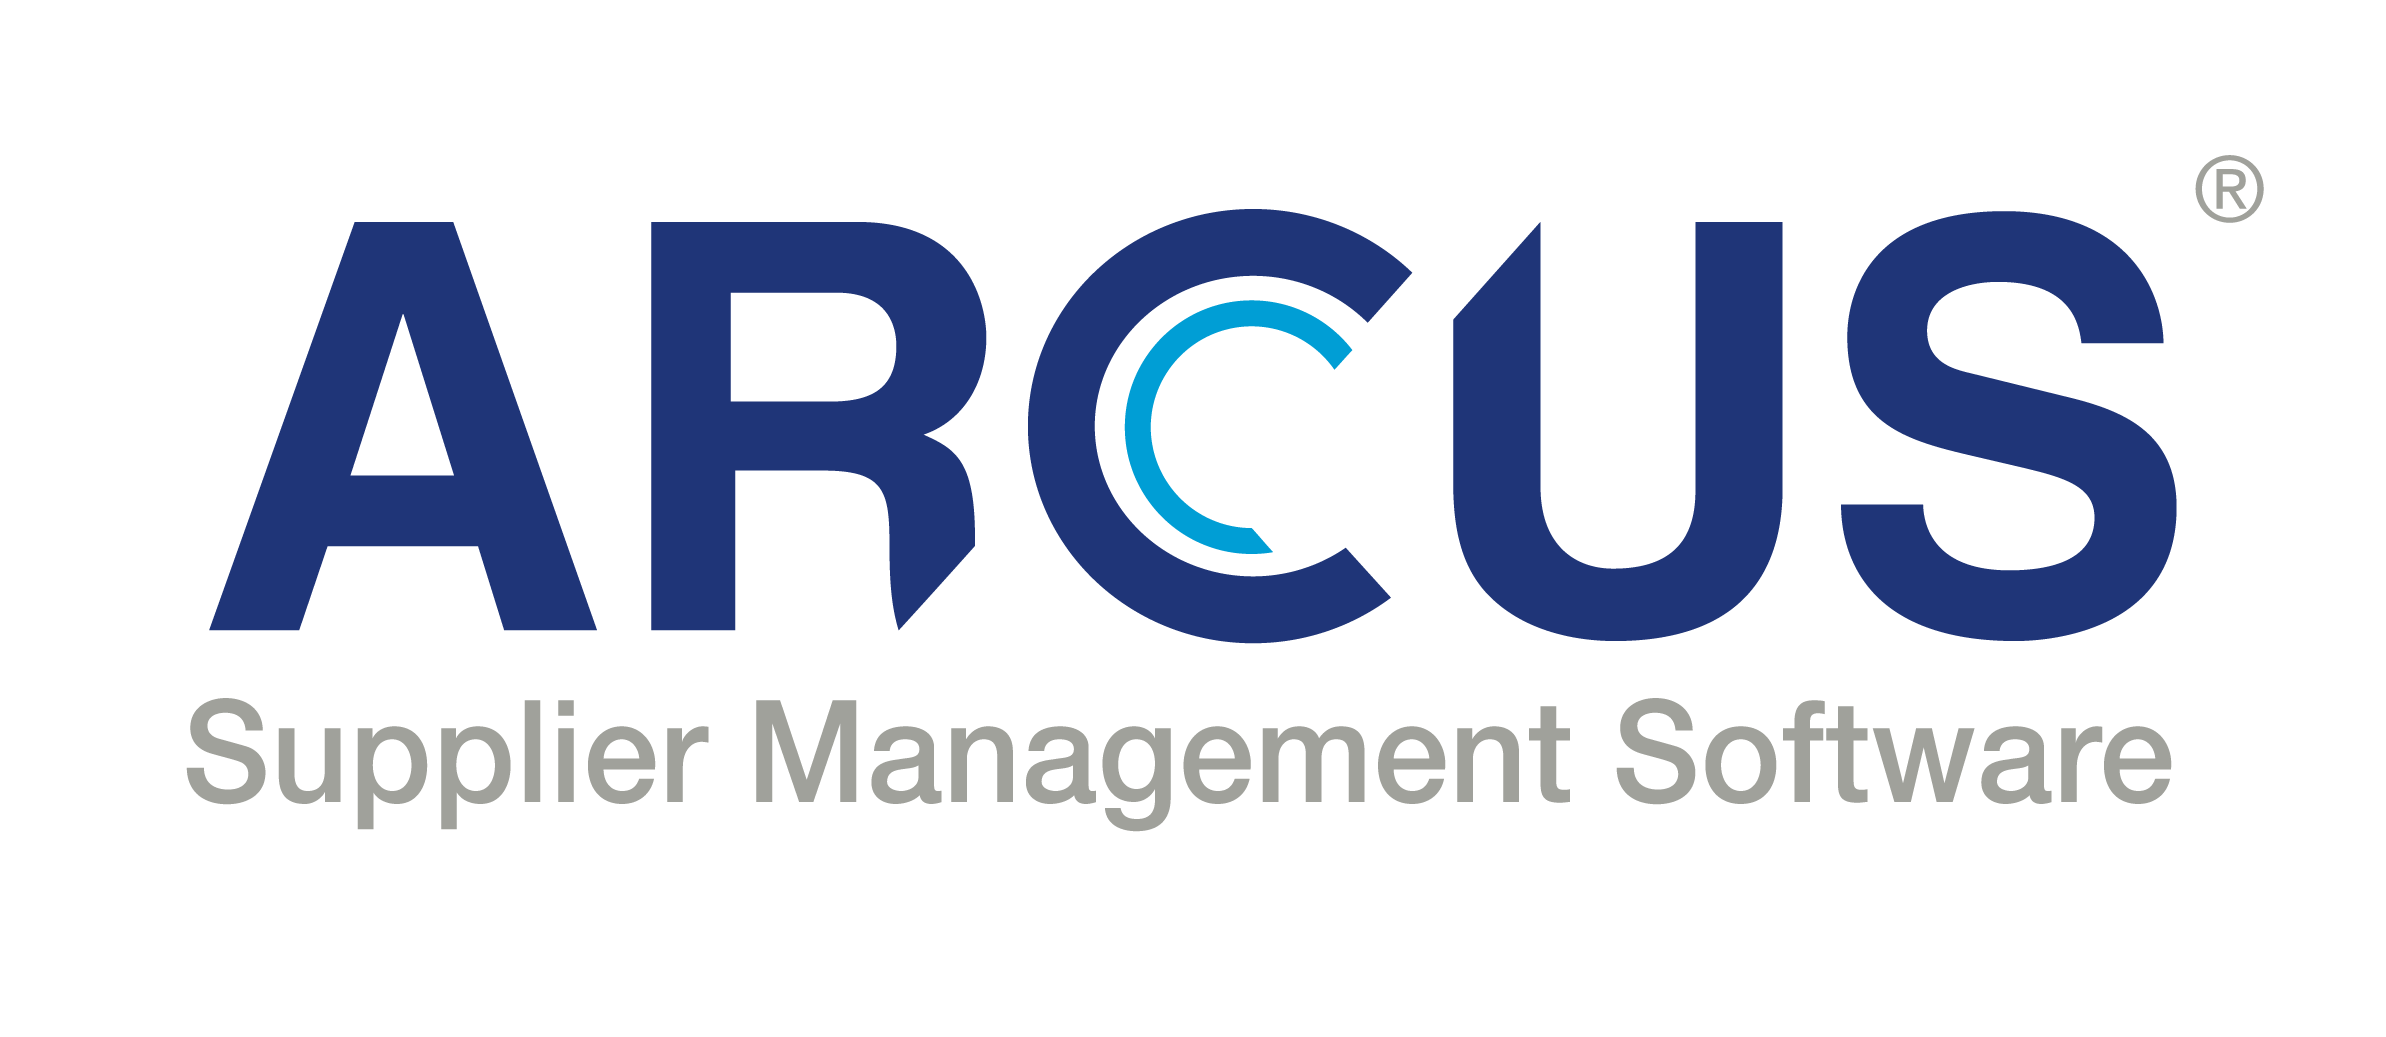 ARCUS® Supplier Management Software Hi-Res